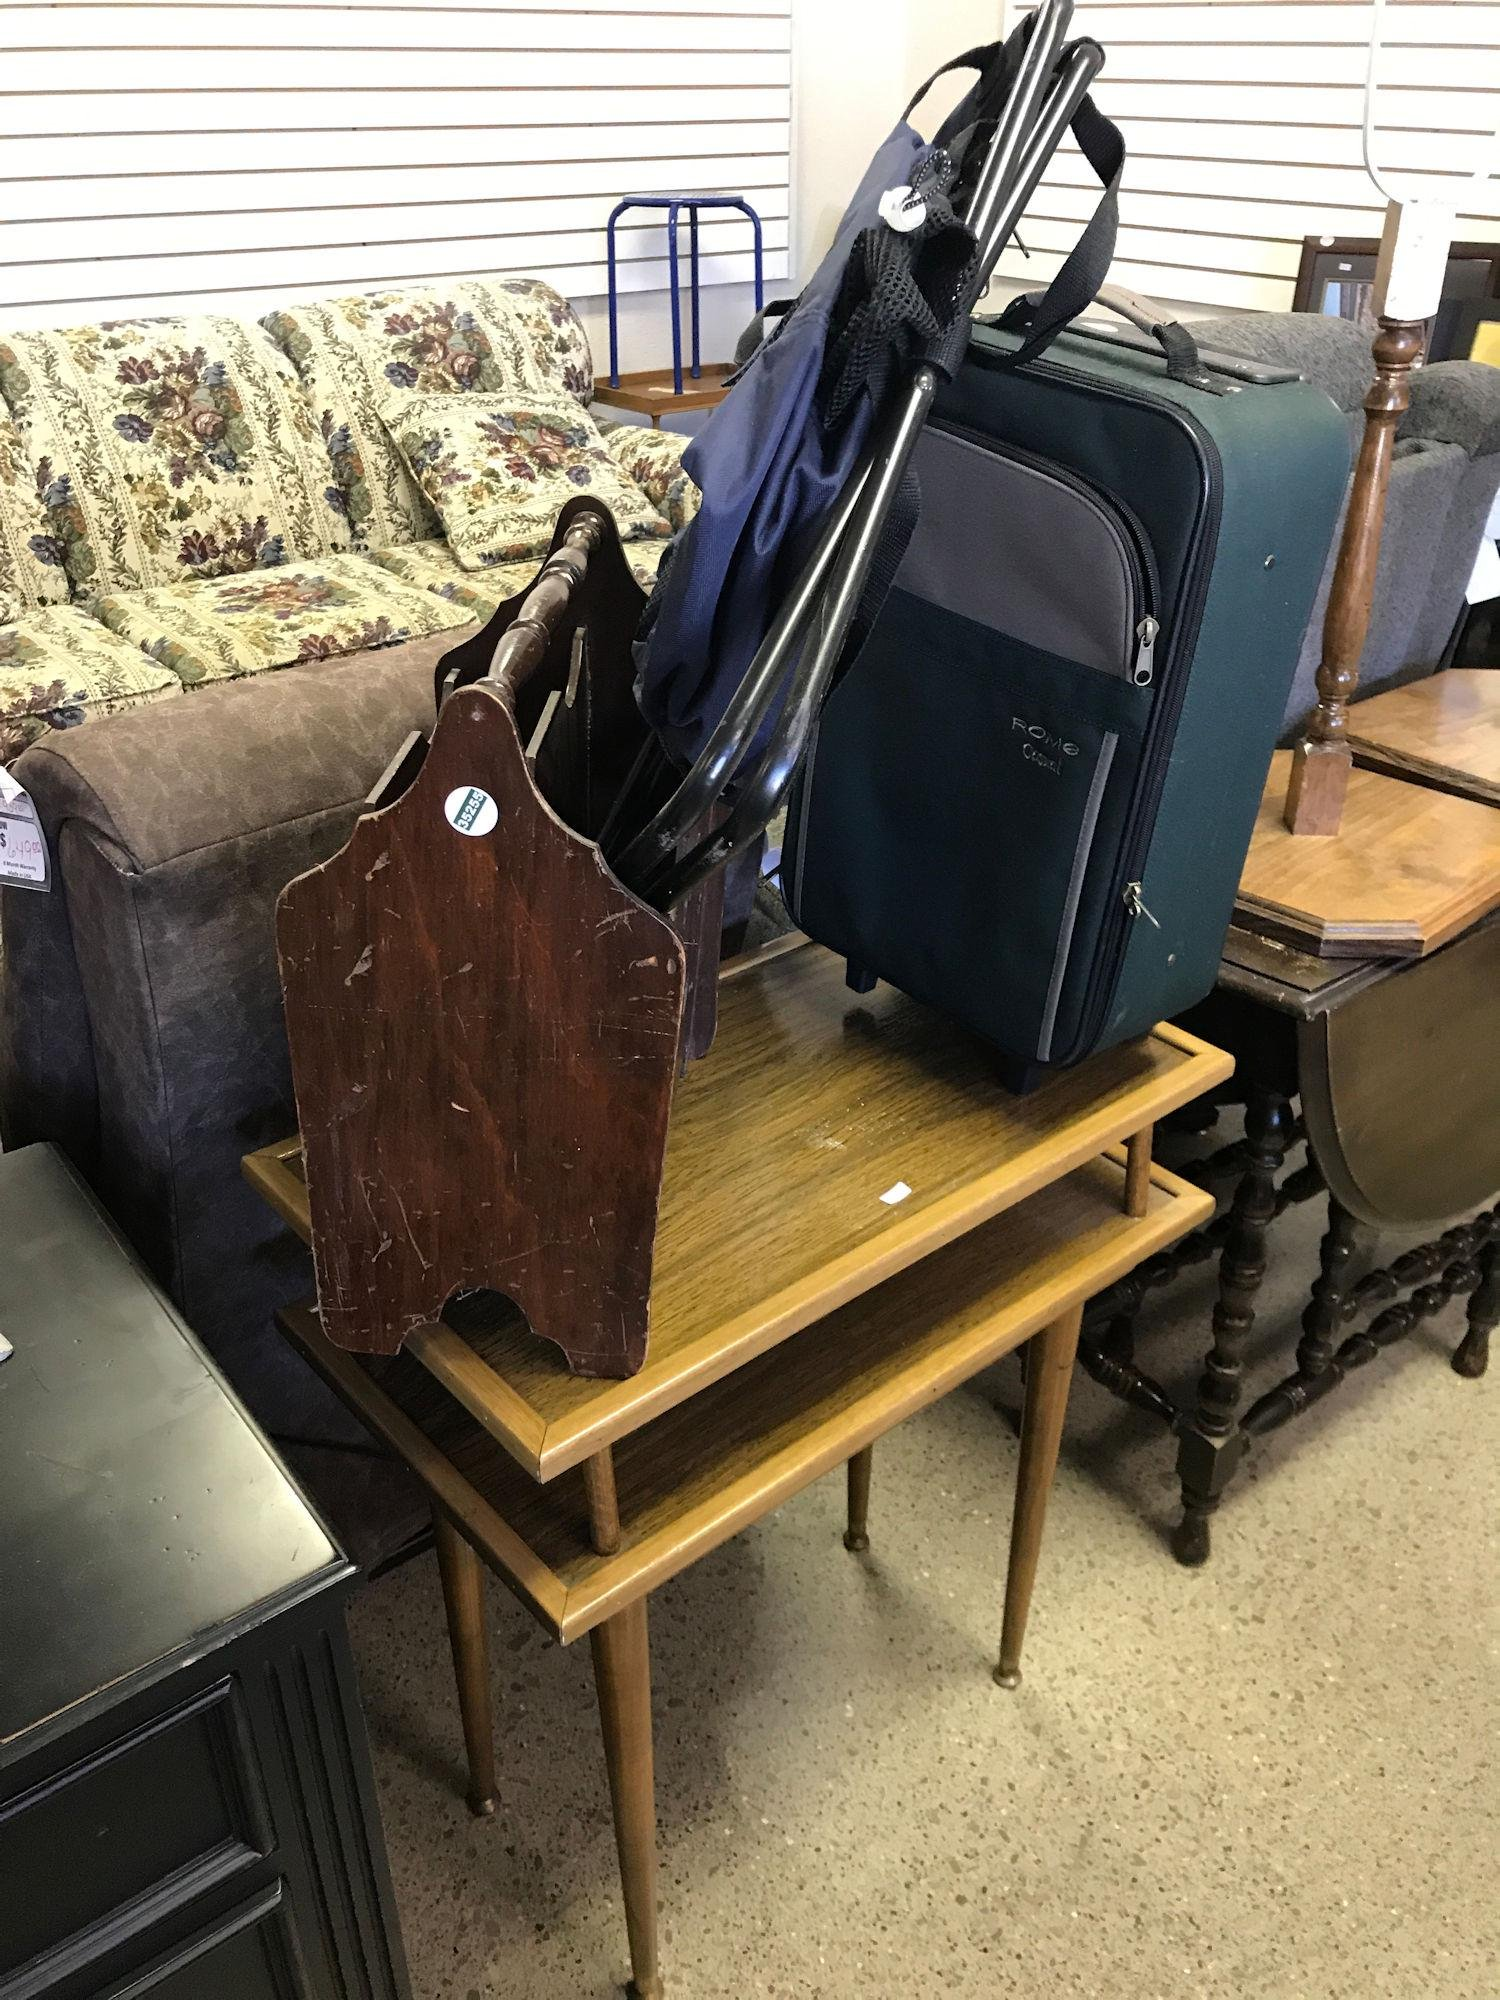 WOODEN STAND, MAGAZINE RACK, SUITCASE, PORTABLE STOOL